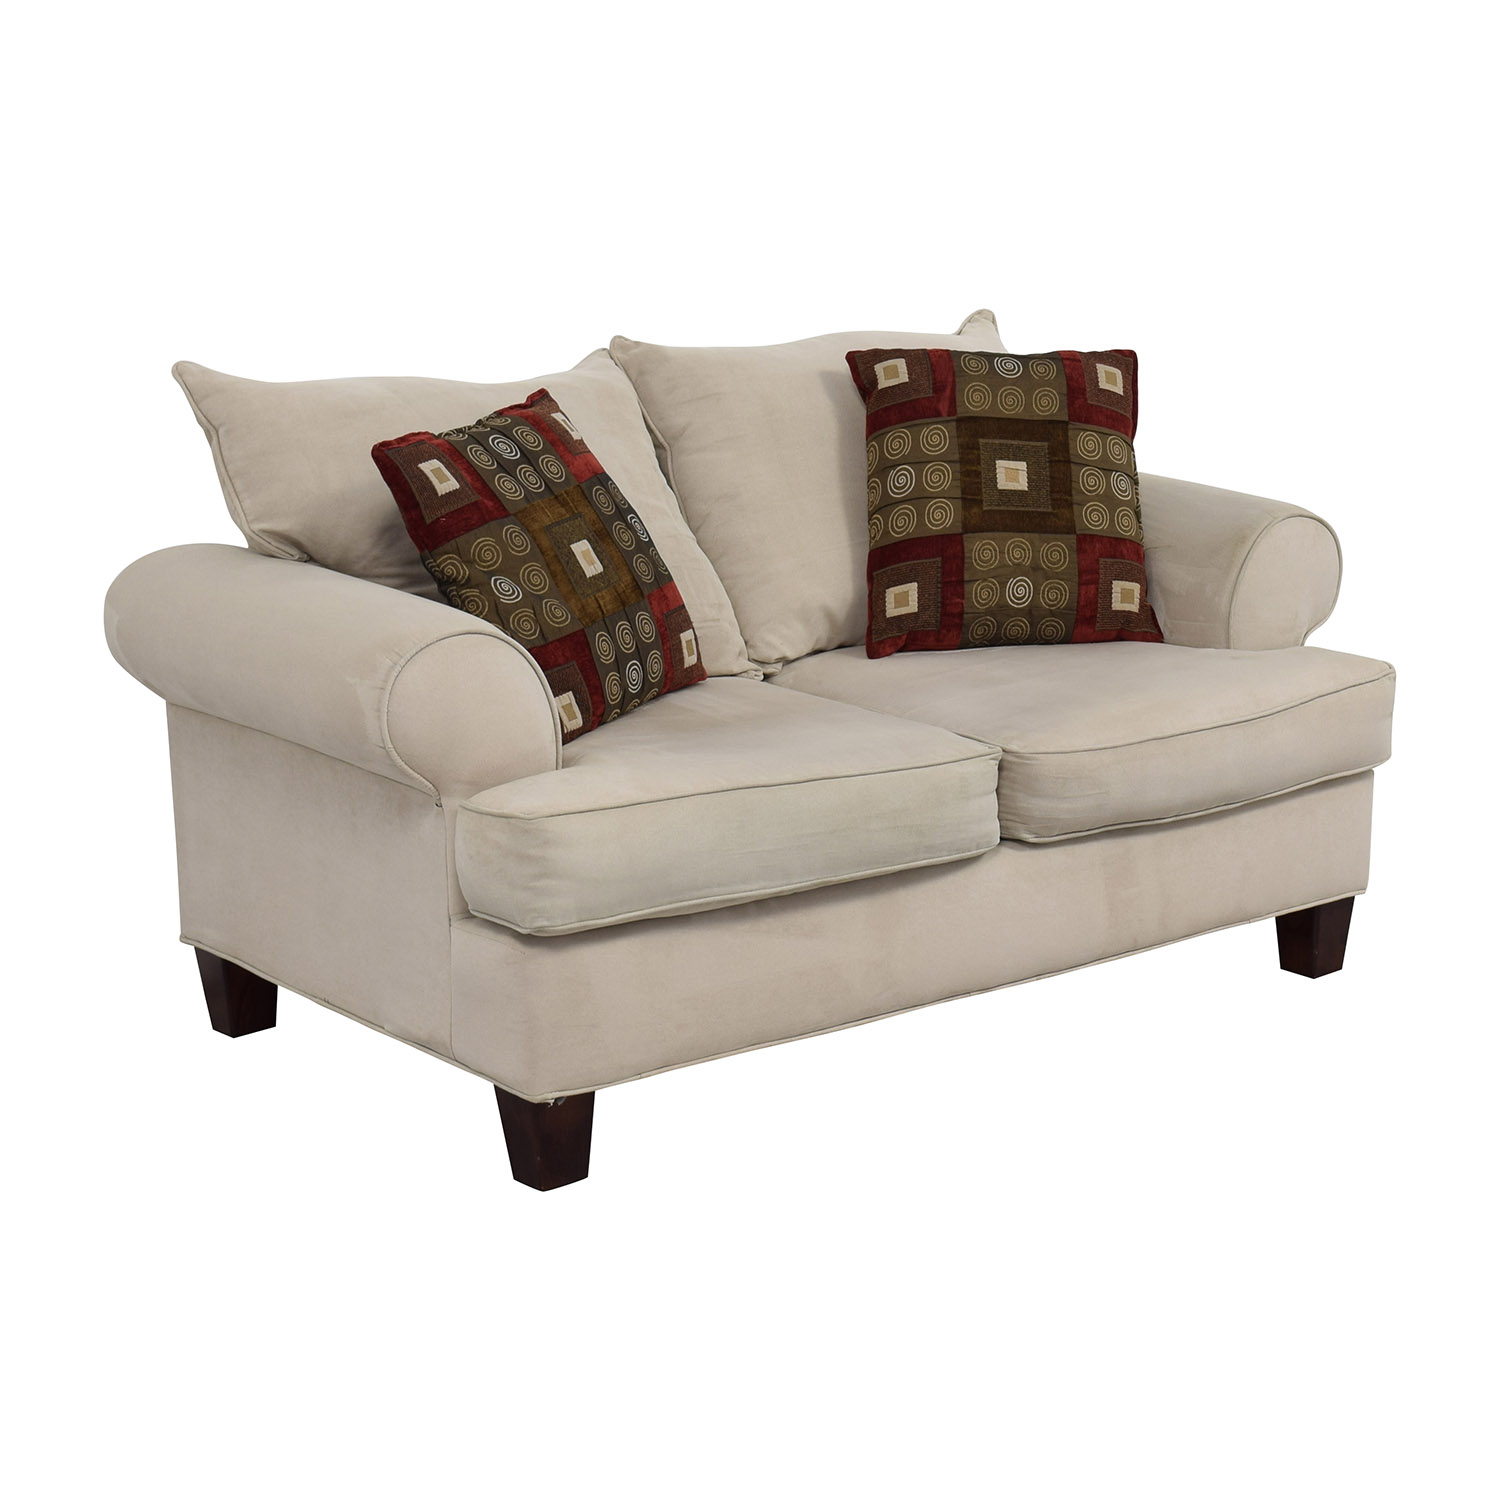 Bobs Discount Furniture Cream Love Seat / Loveseats